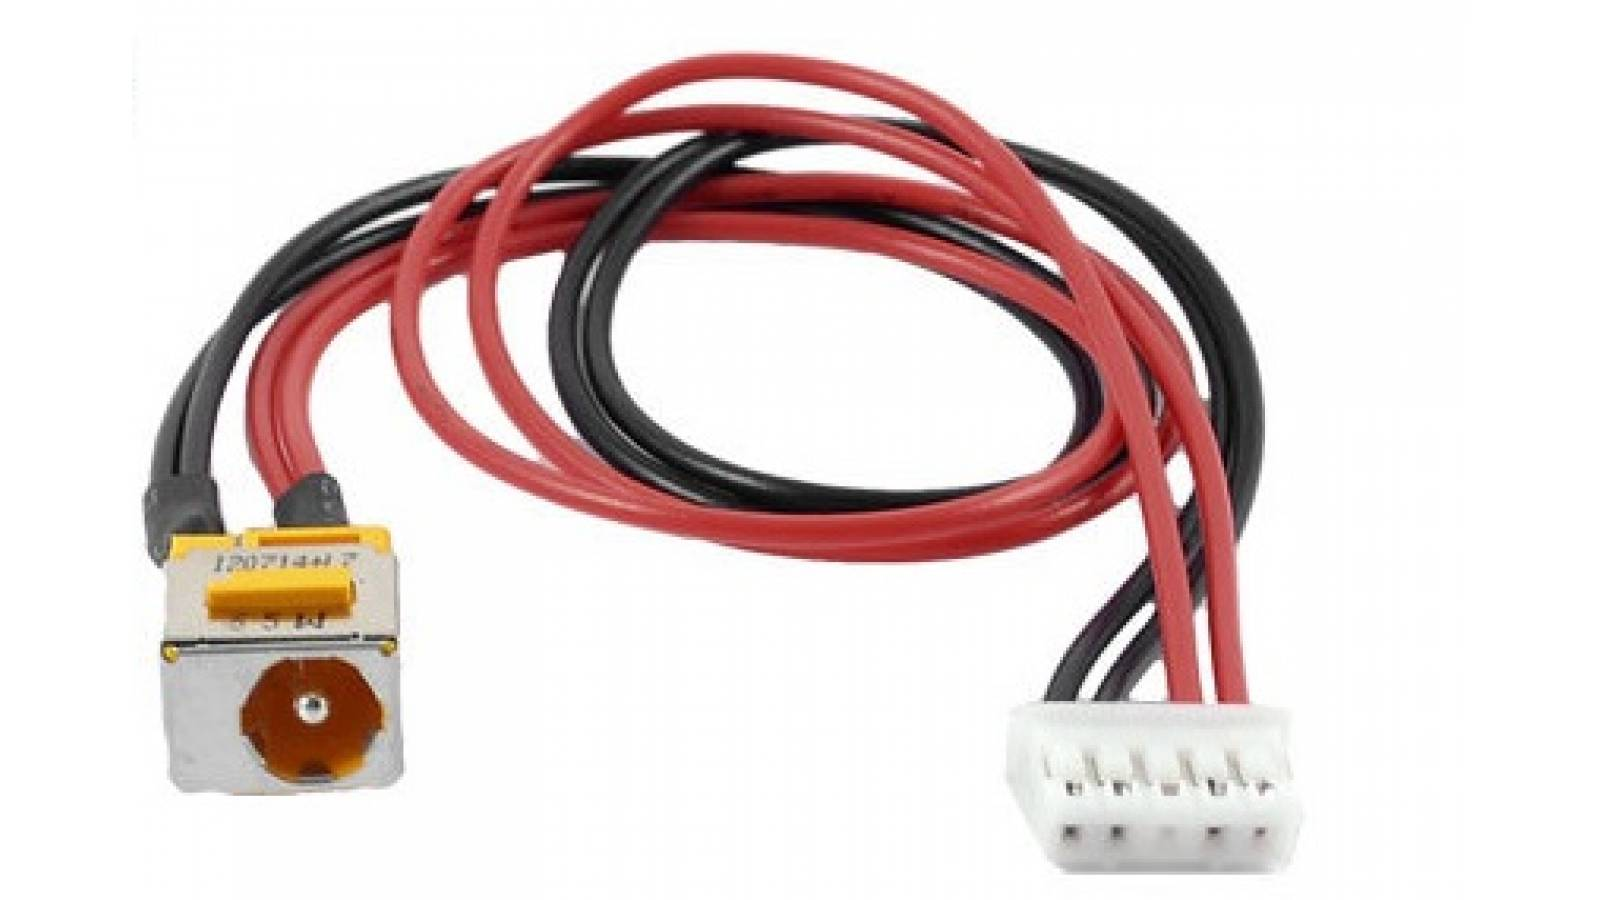 DC JACK POWER ACER ASPIRE 5735 5235 5335(WITH CABLE)